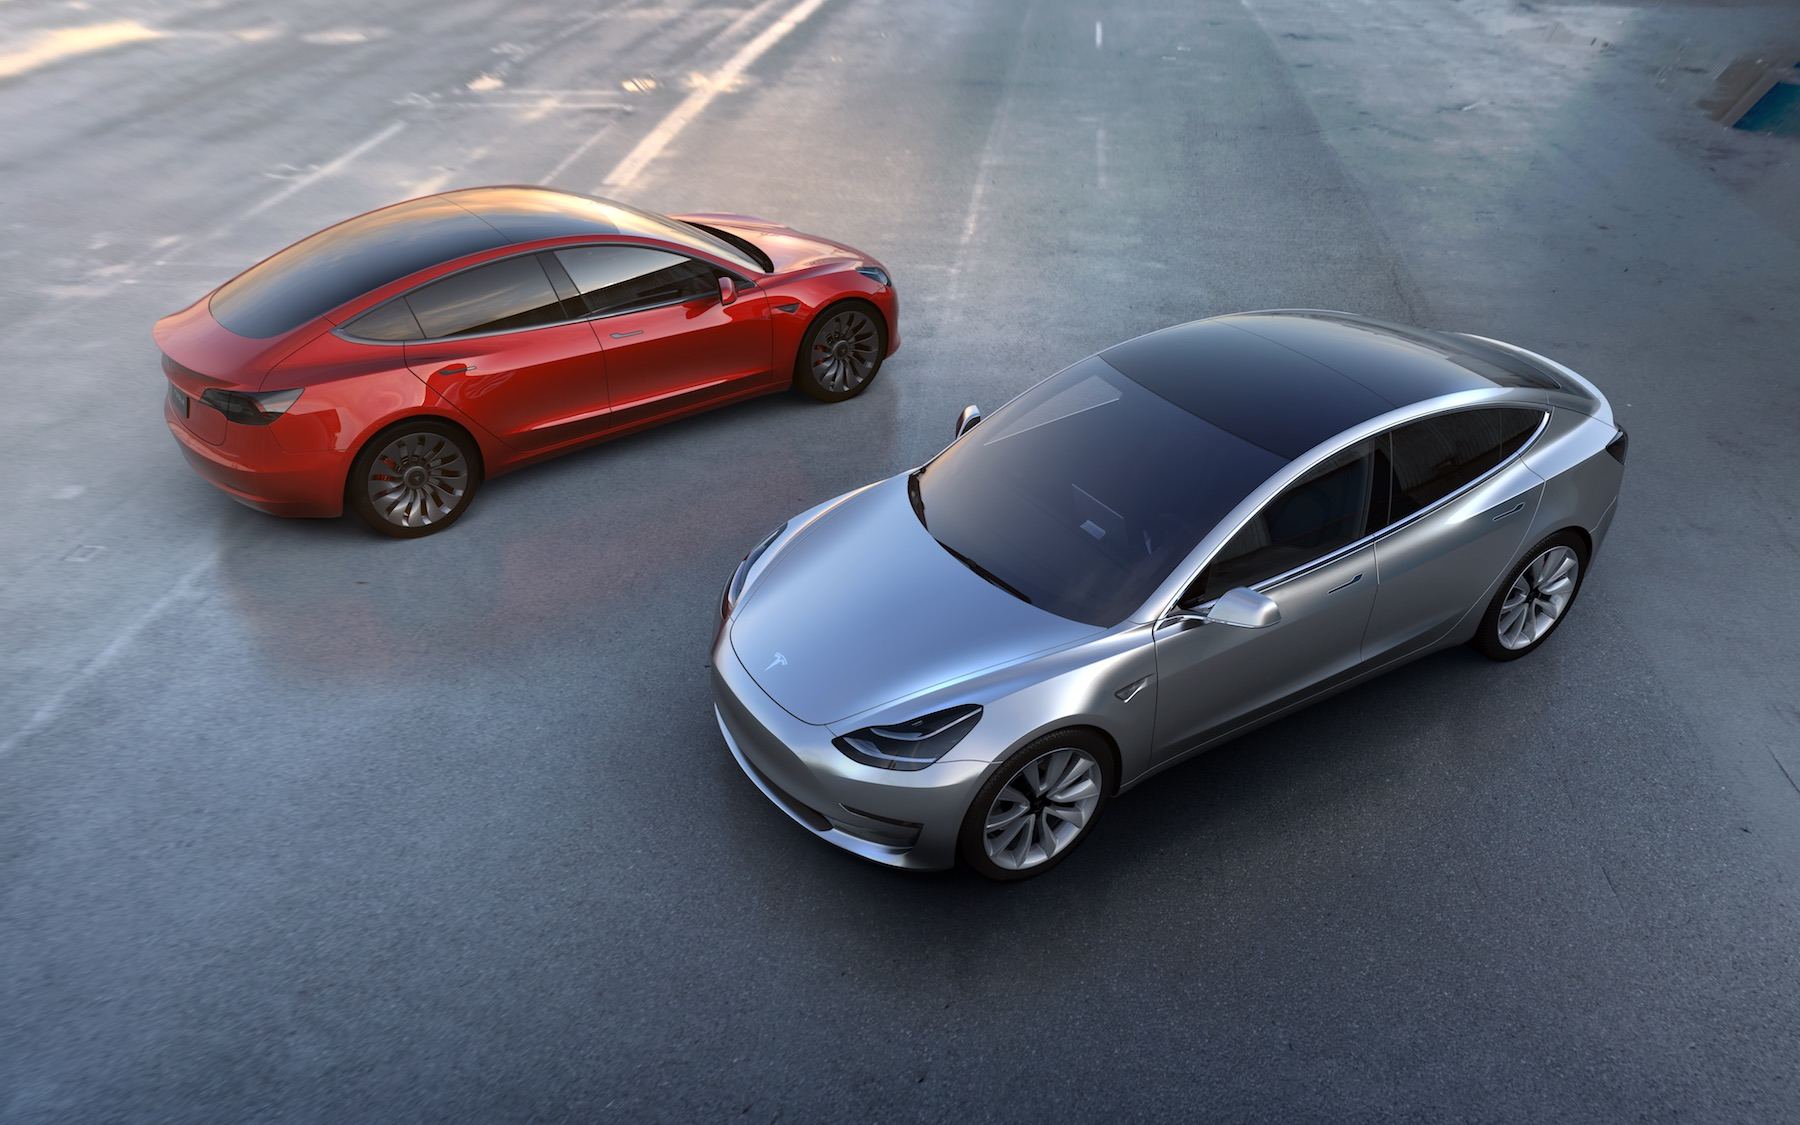 Tesla Will Be Making Electric Motors And Gearboxes At Its Nevada  Gigafactory, In Addition To Batteries. The News Comes From Nevada Governor  Brian Sandoval, ...